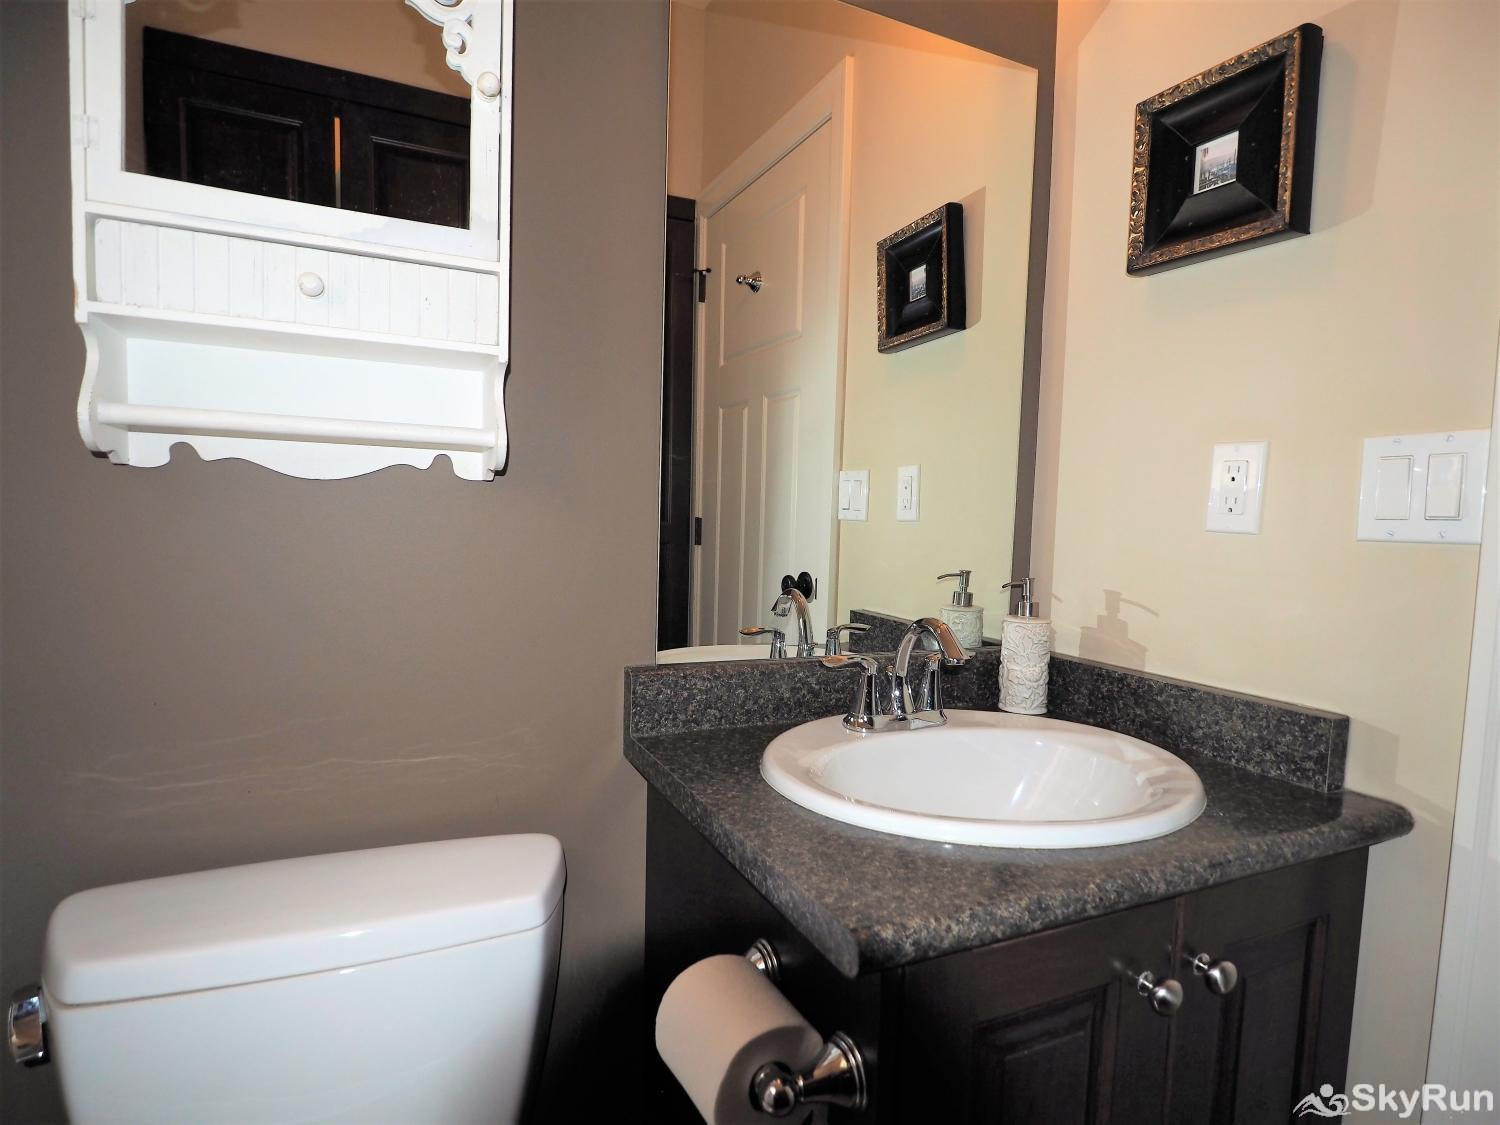 Old Summerland 4 bedroom townhouse The powder room is on the main floor